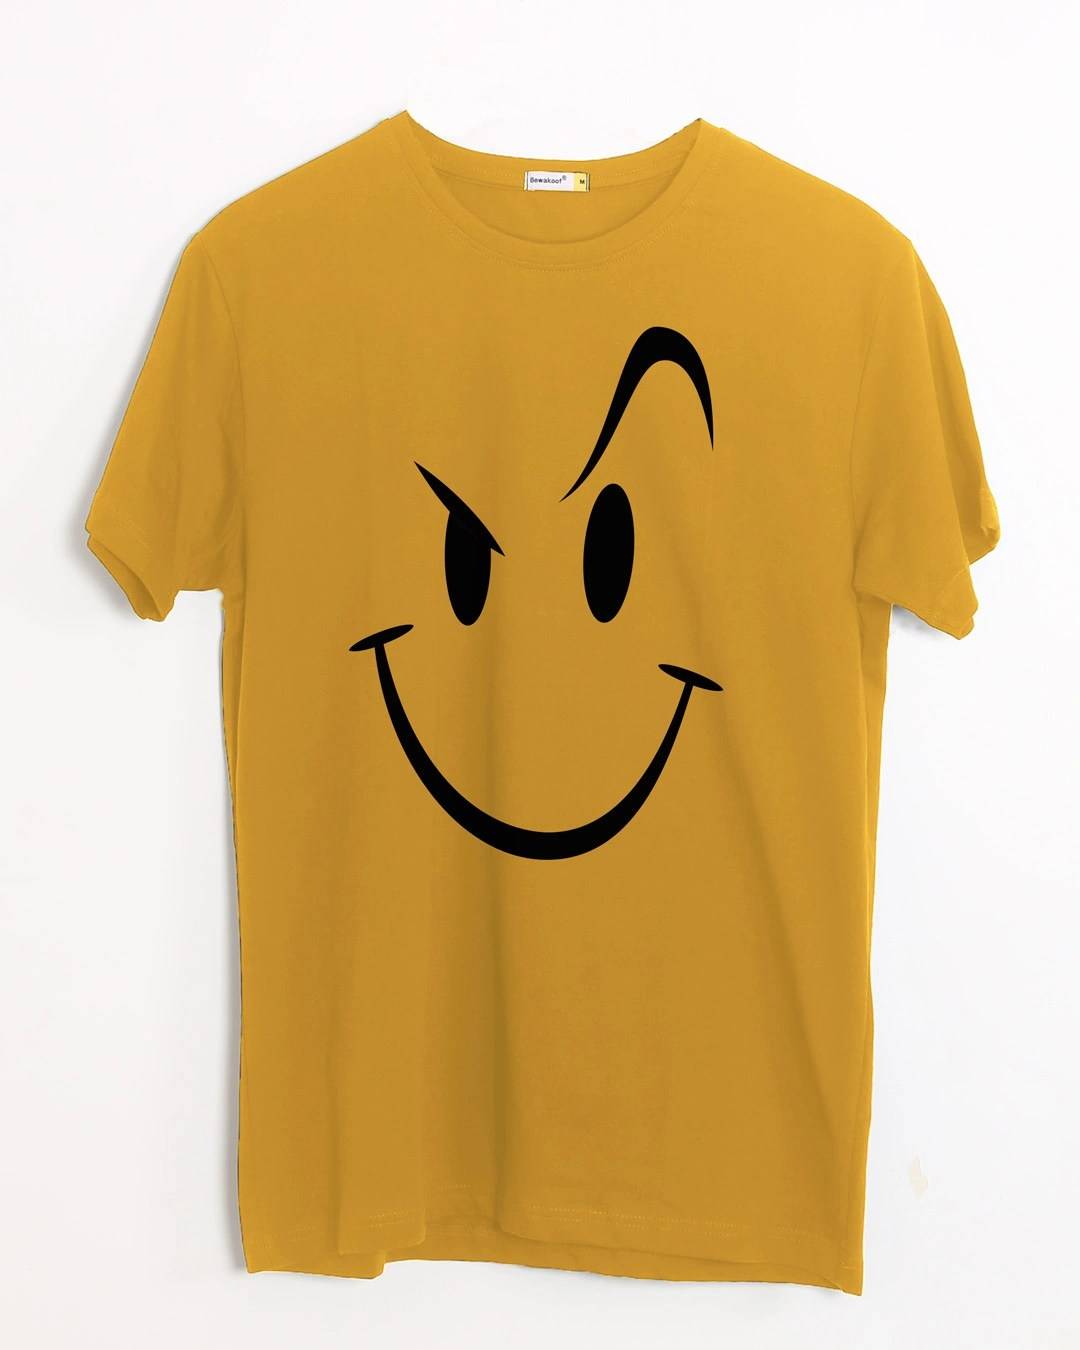 T Short Wink New Half Sleeve T Shirt